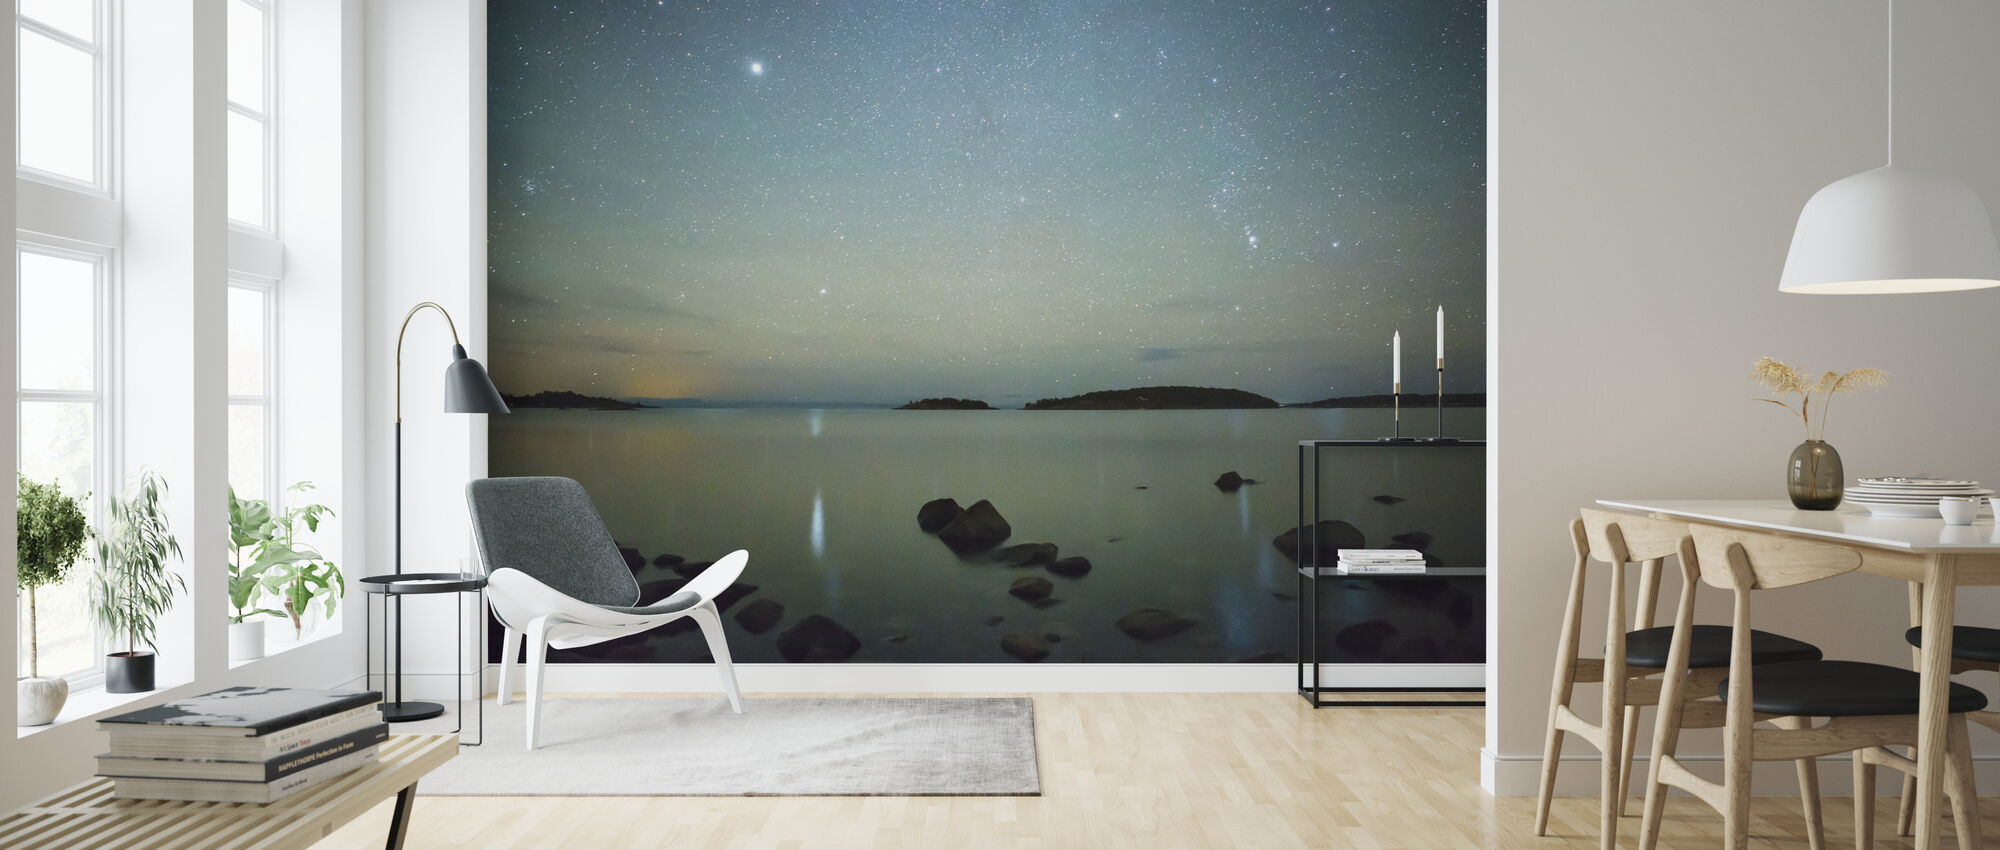 Starry Sky over Juniskär, Sweden - Wallpaper - Living Room